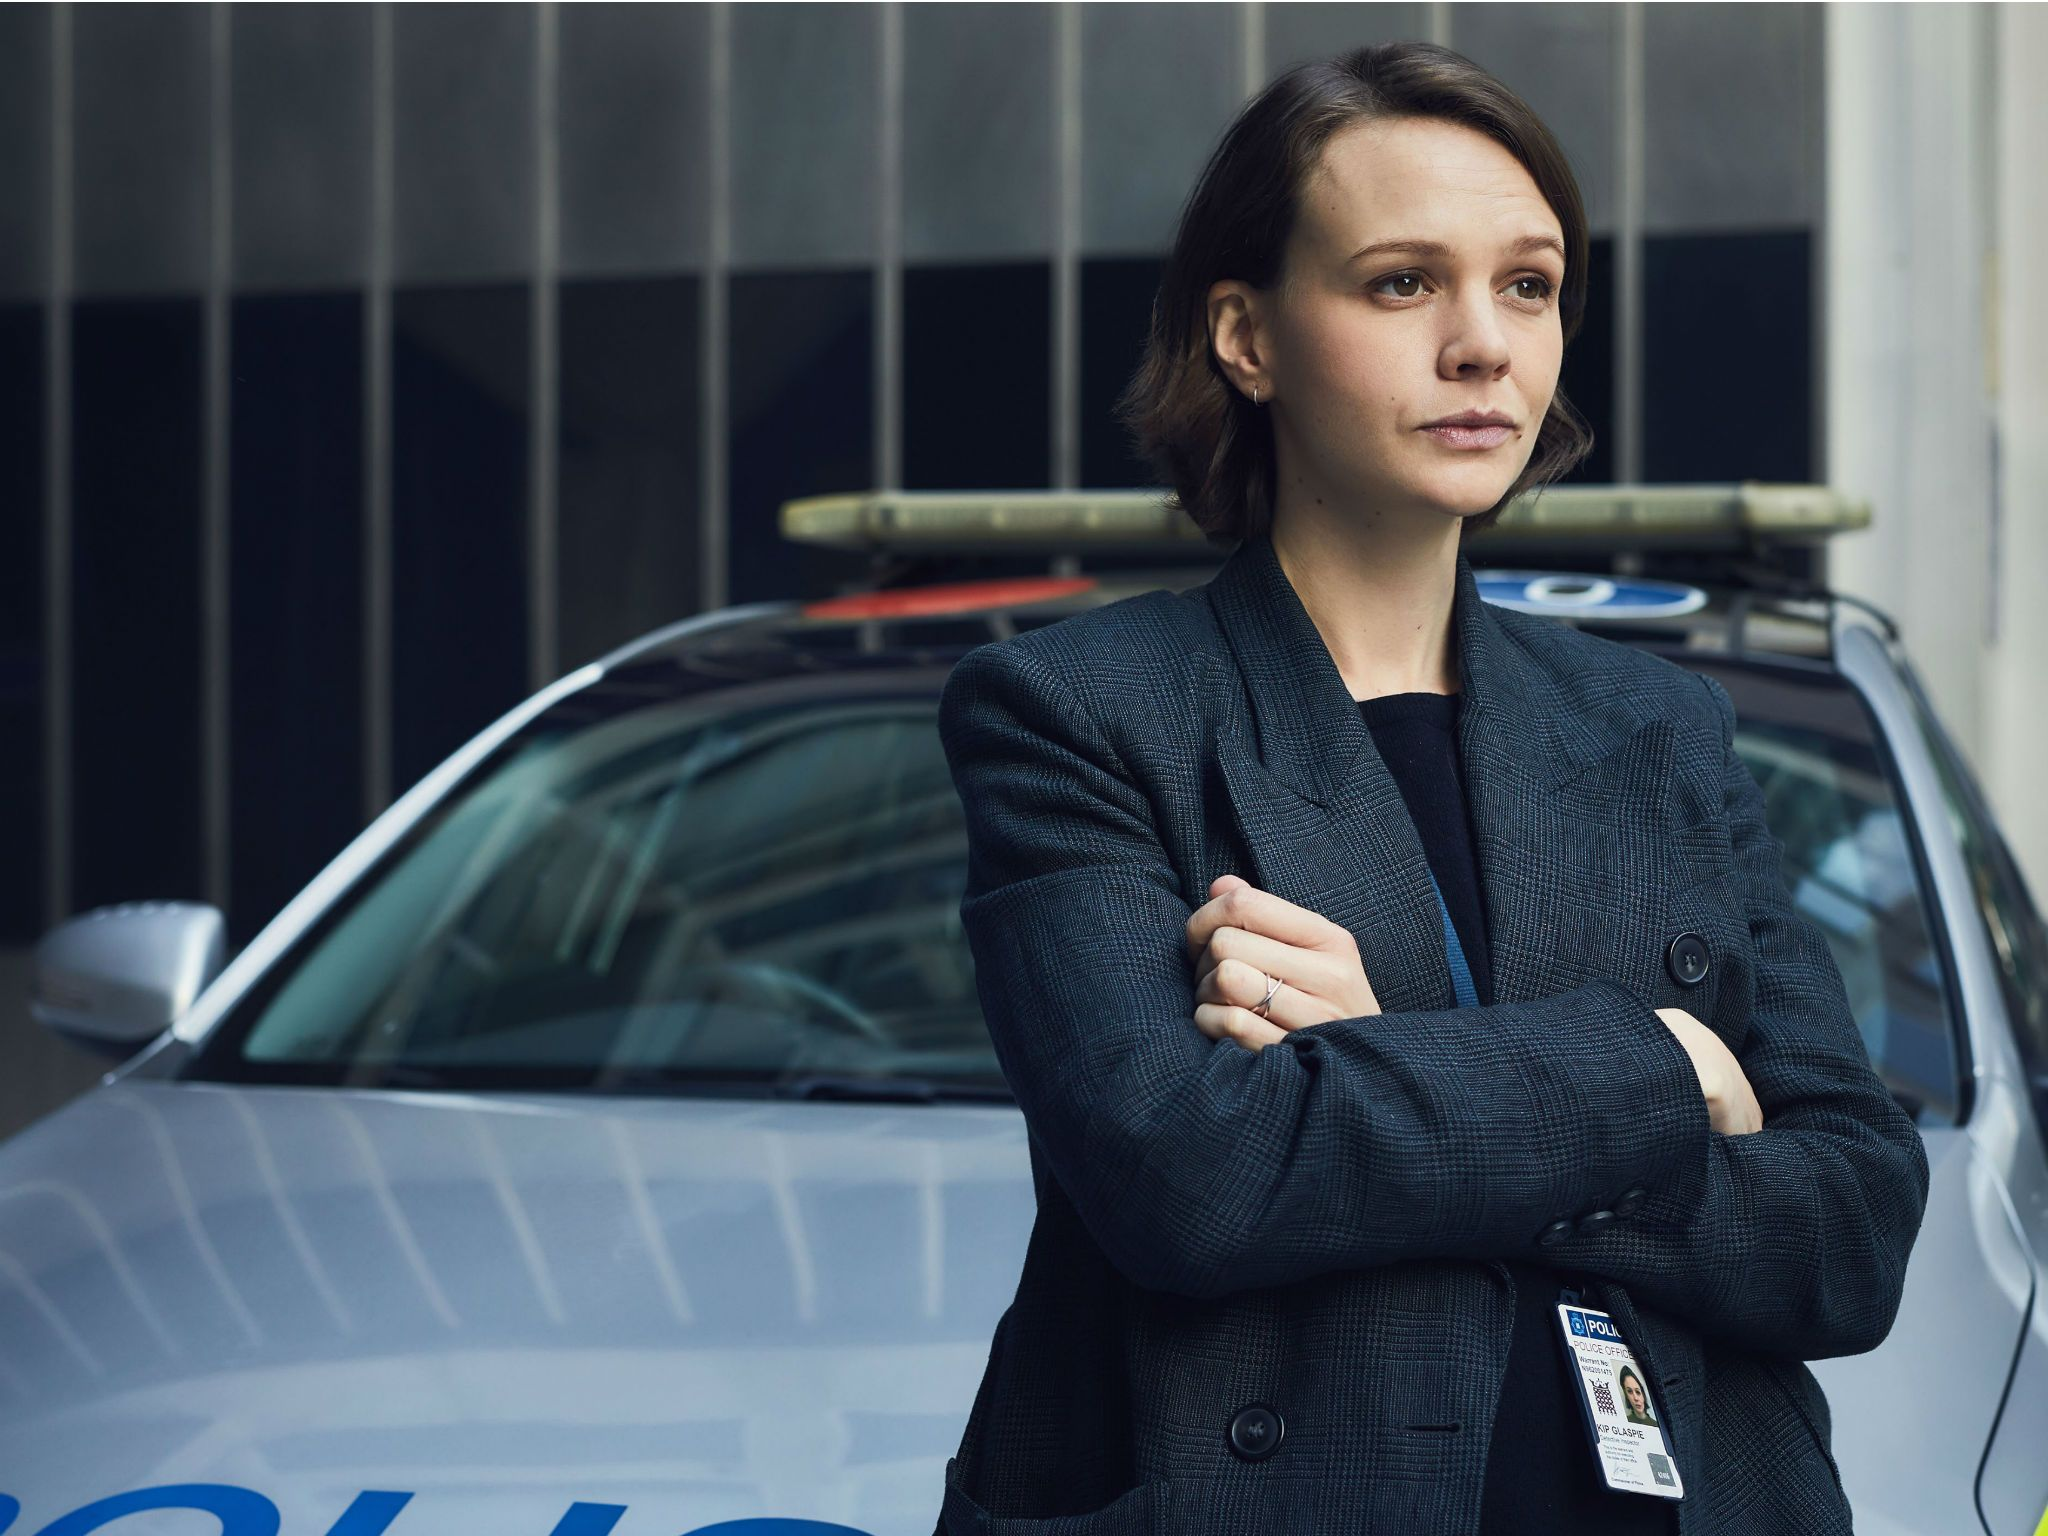 collateral carey mulligan - 'Collateral' Review: Carey Mulligan Leads a Netflix Mystery with Serious Smarts